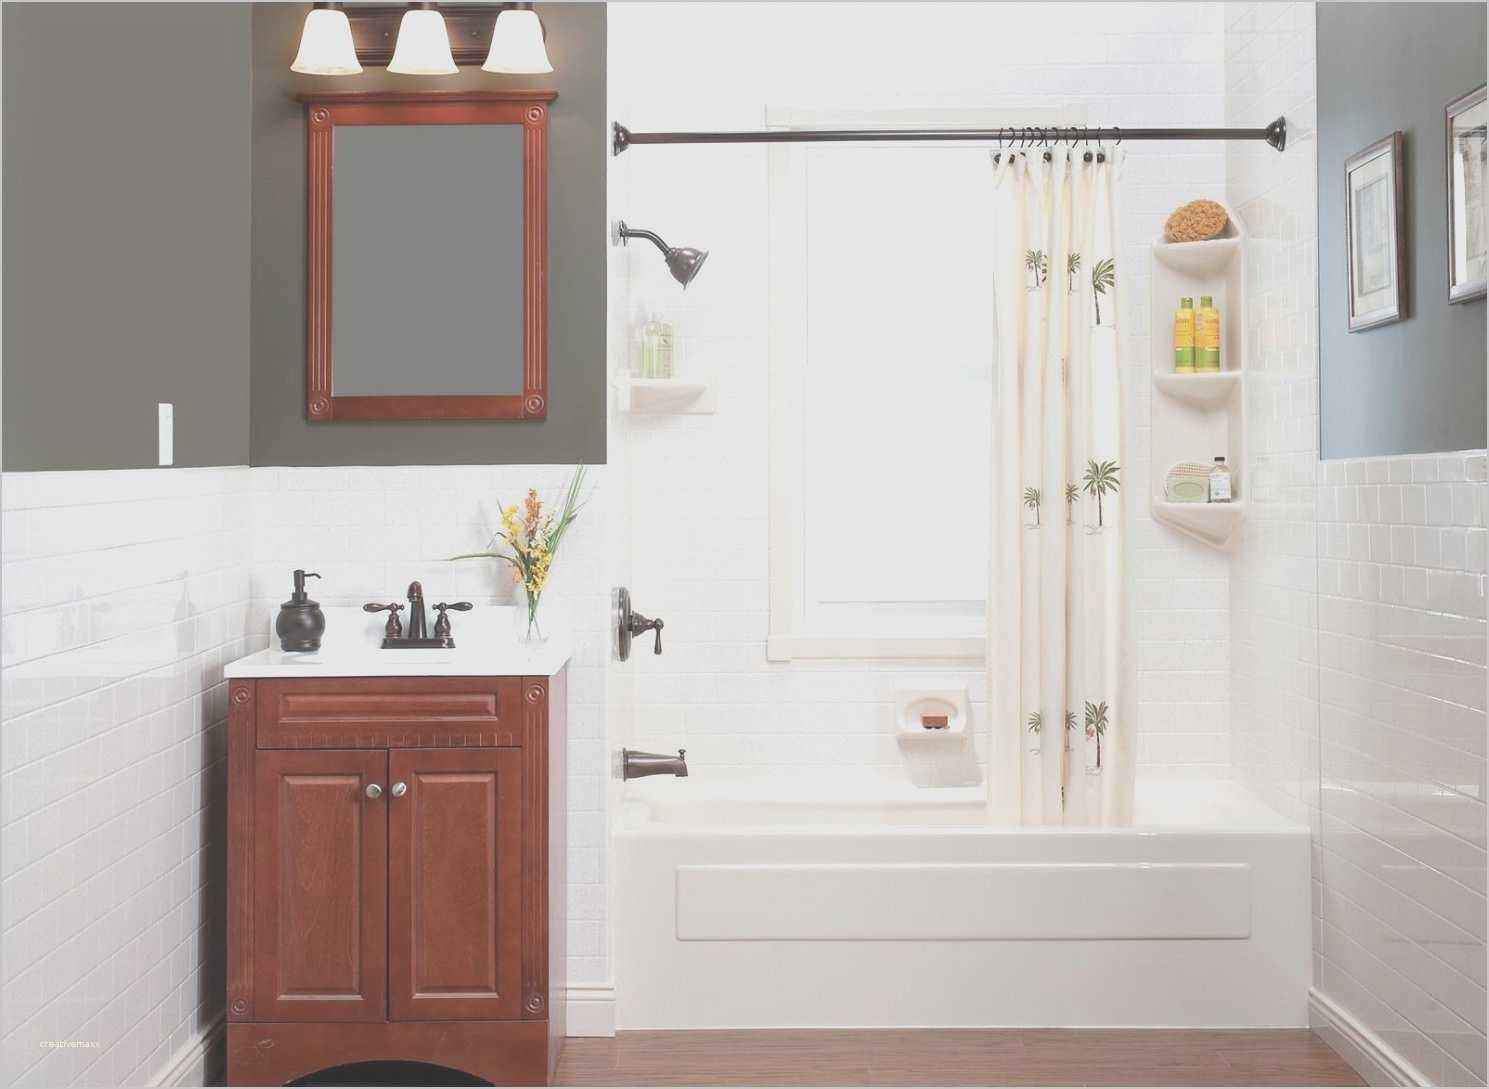 Rental Apartment Bathroom Decorating Ideas Inspirational